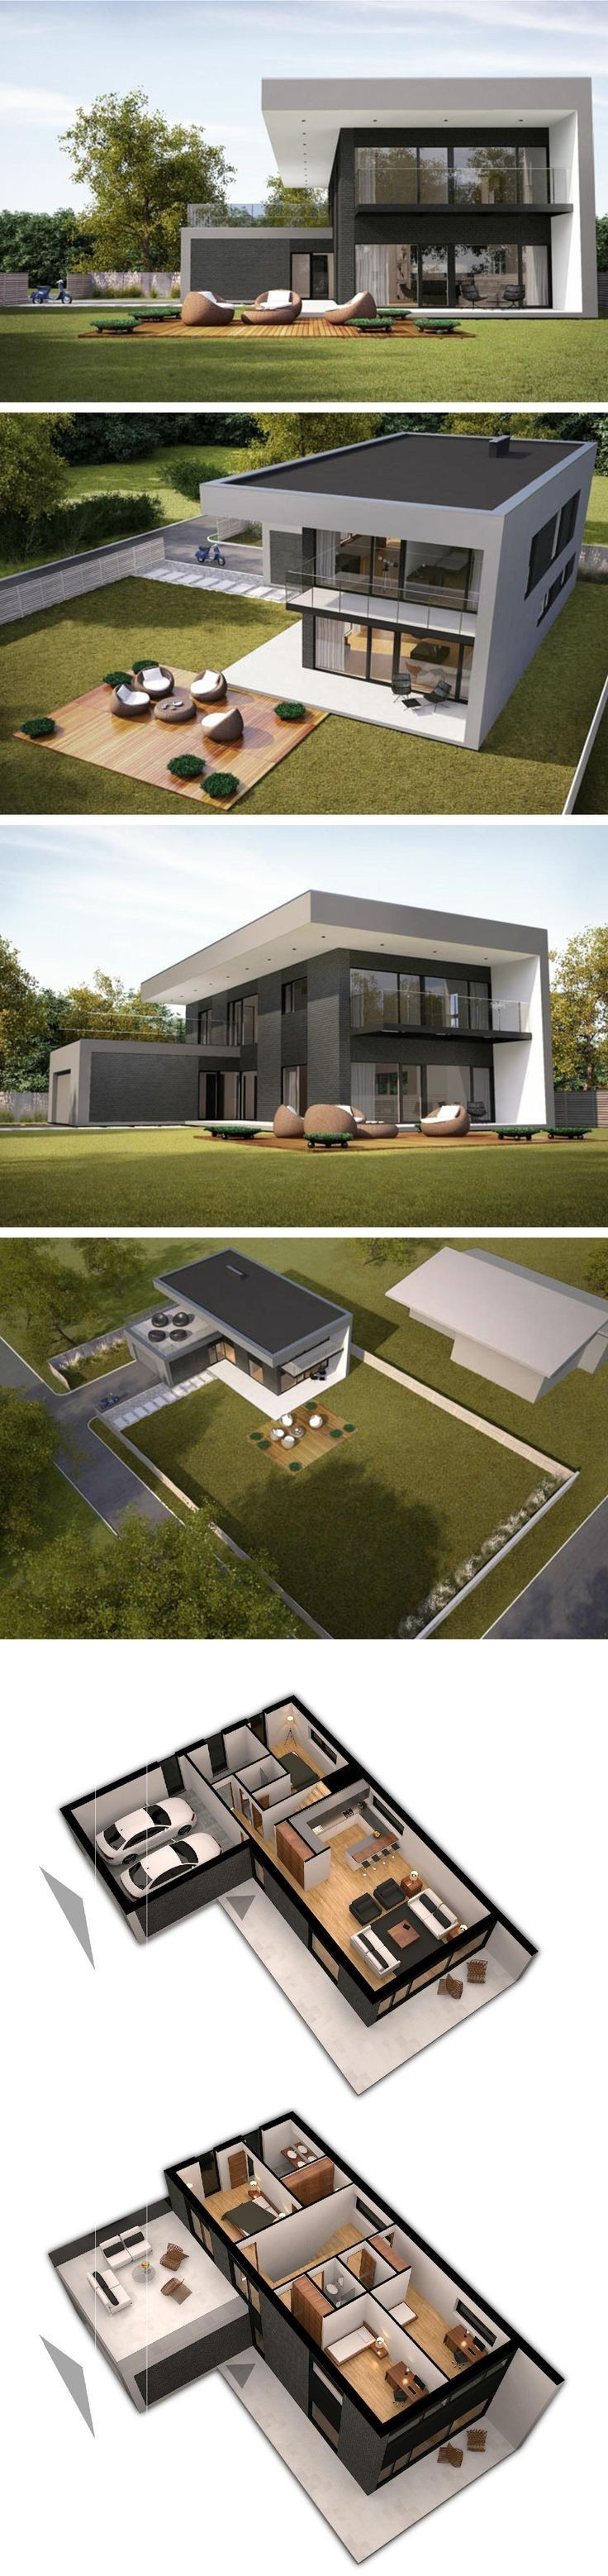 Modern house in vilnius by NG architects